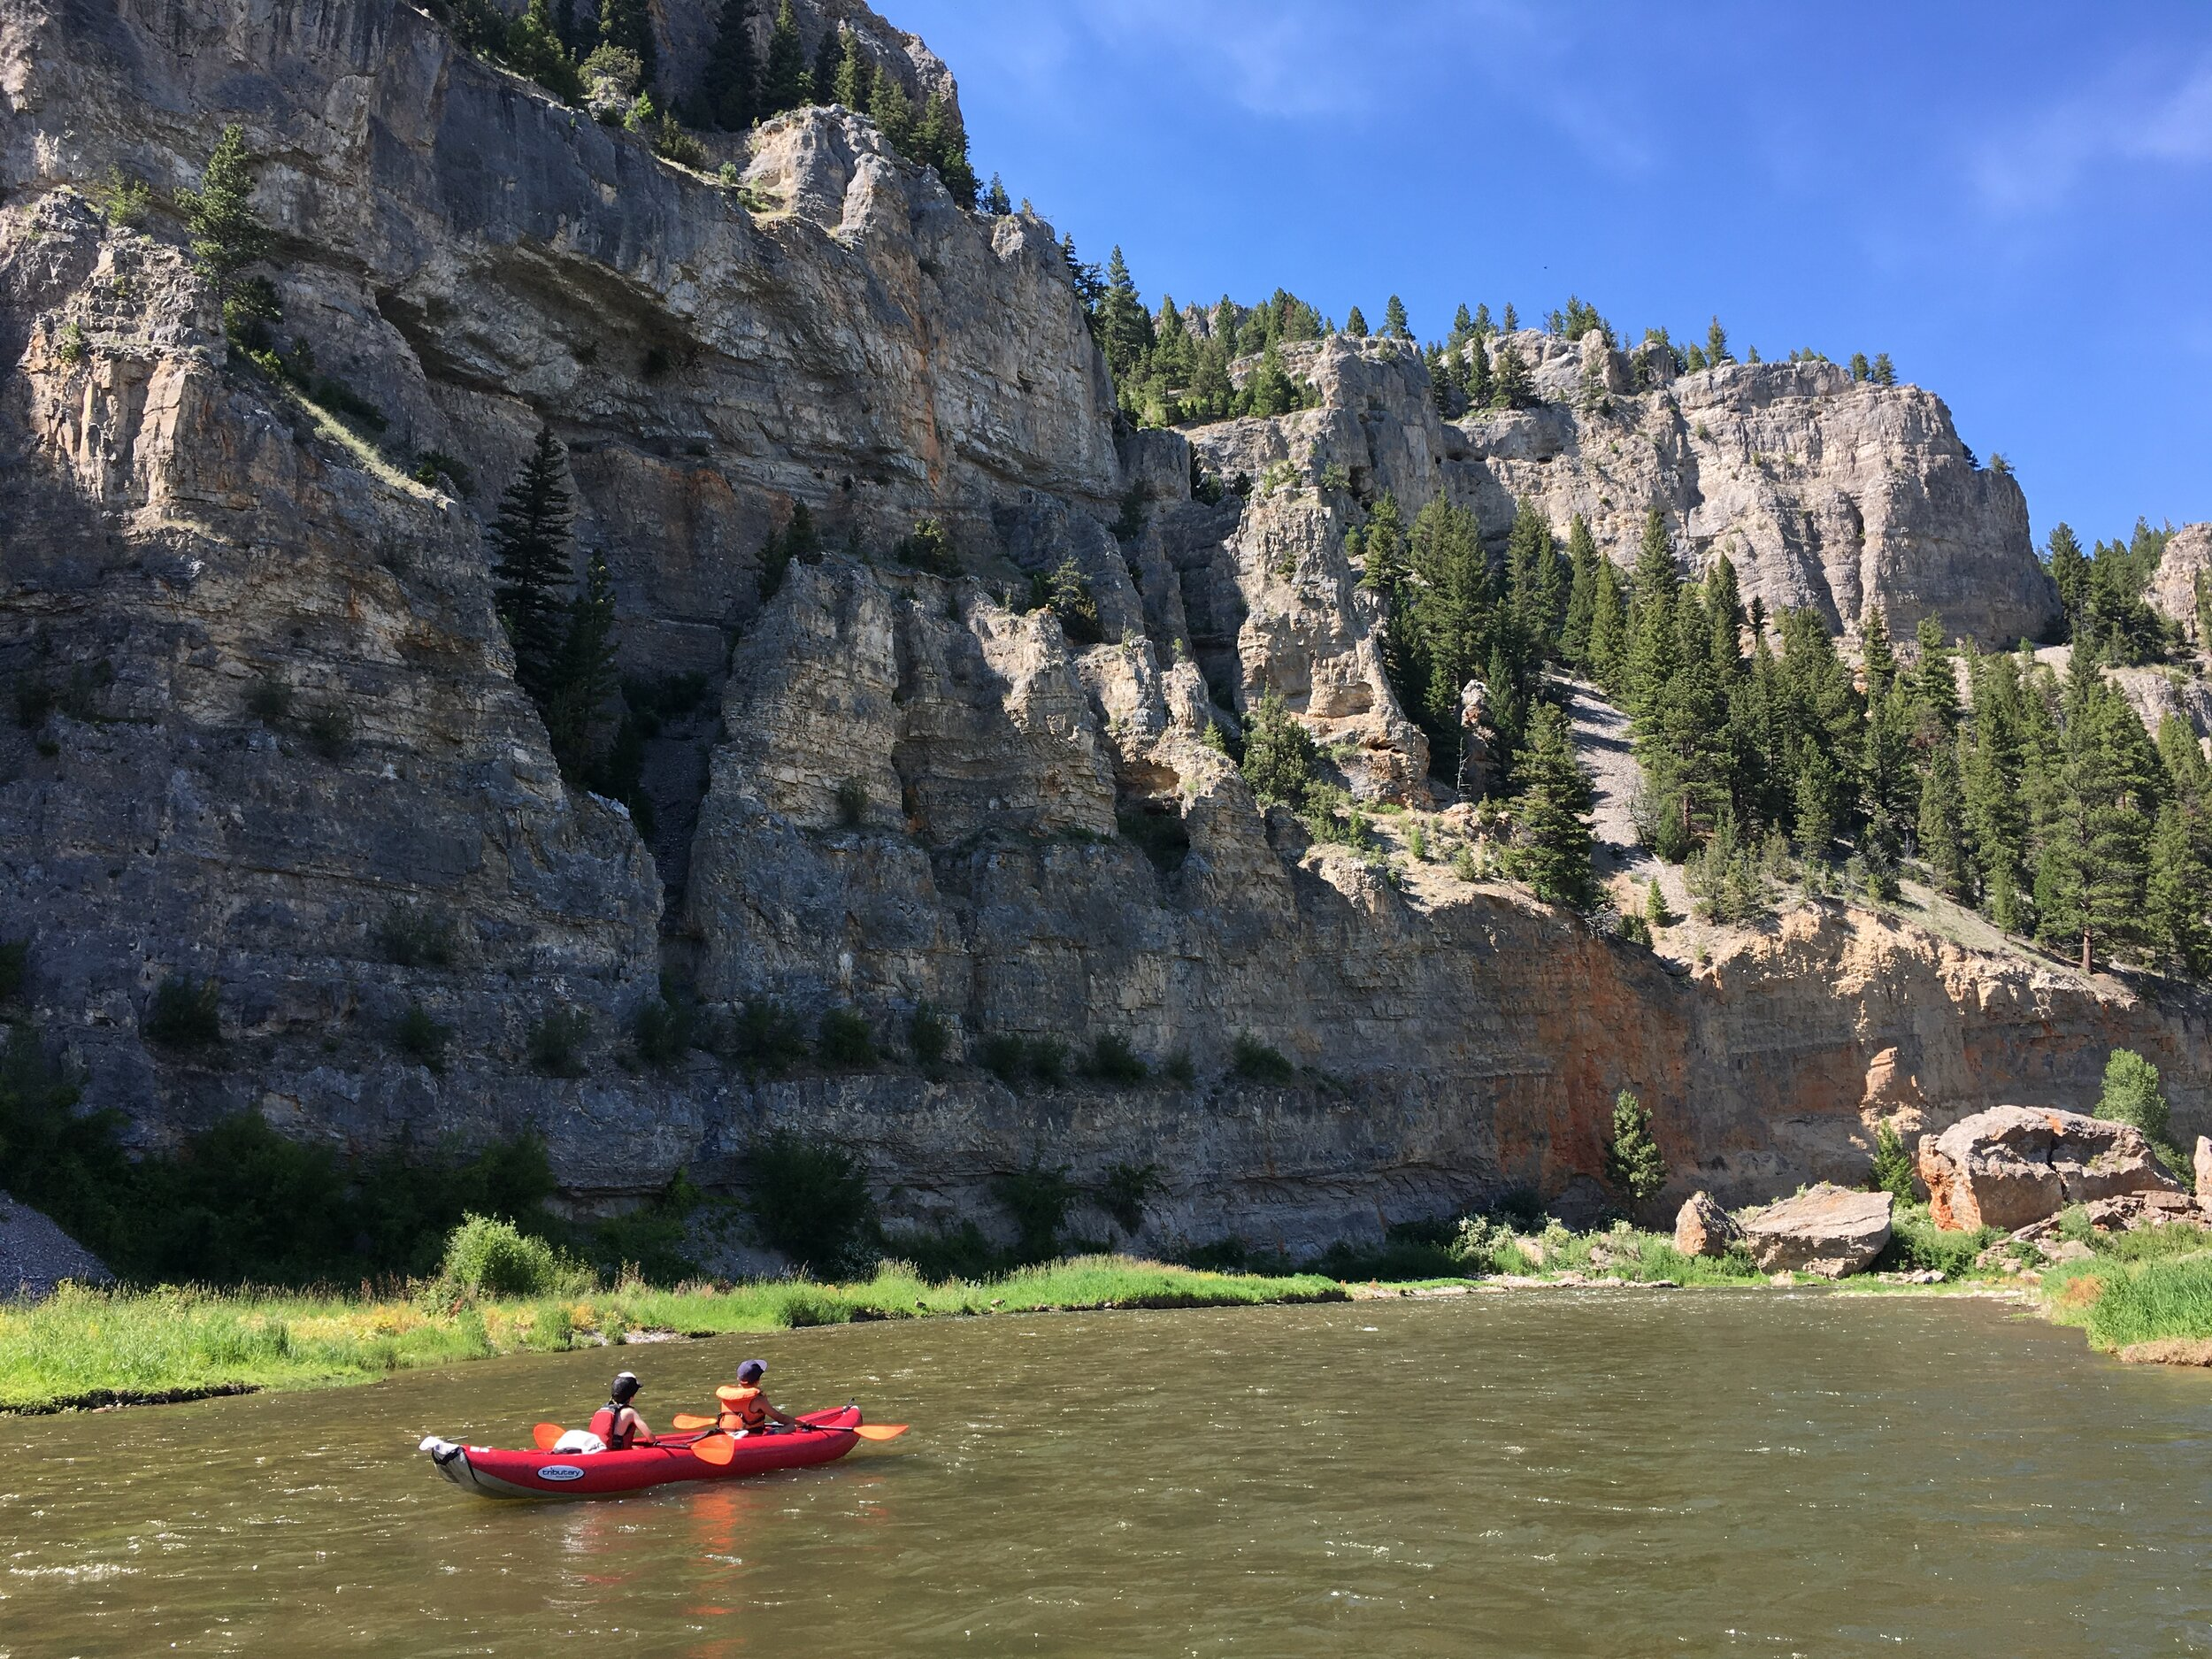 Admiring the Smith River, another one of the proposed rivers for Wild and Scenic designation in the Montana Headwaters Security Act. (Photo Scott Christensen.)